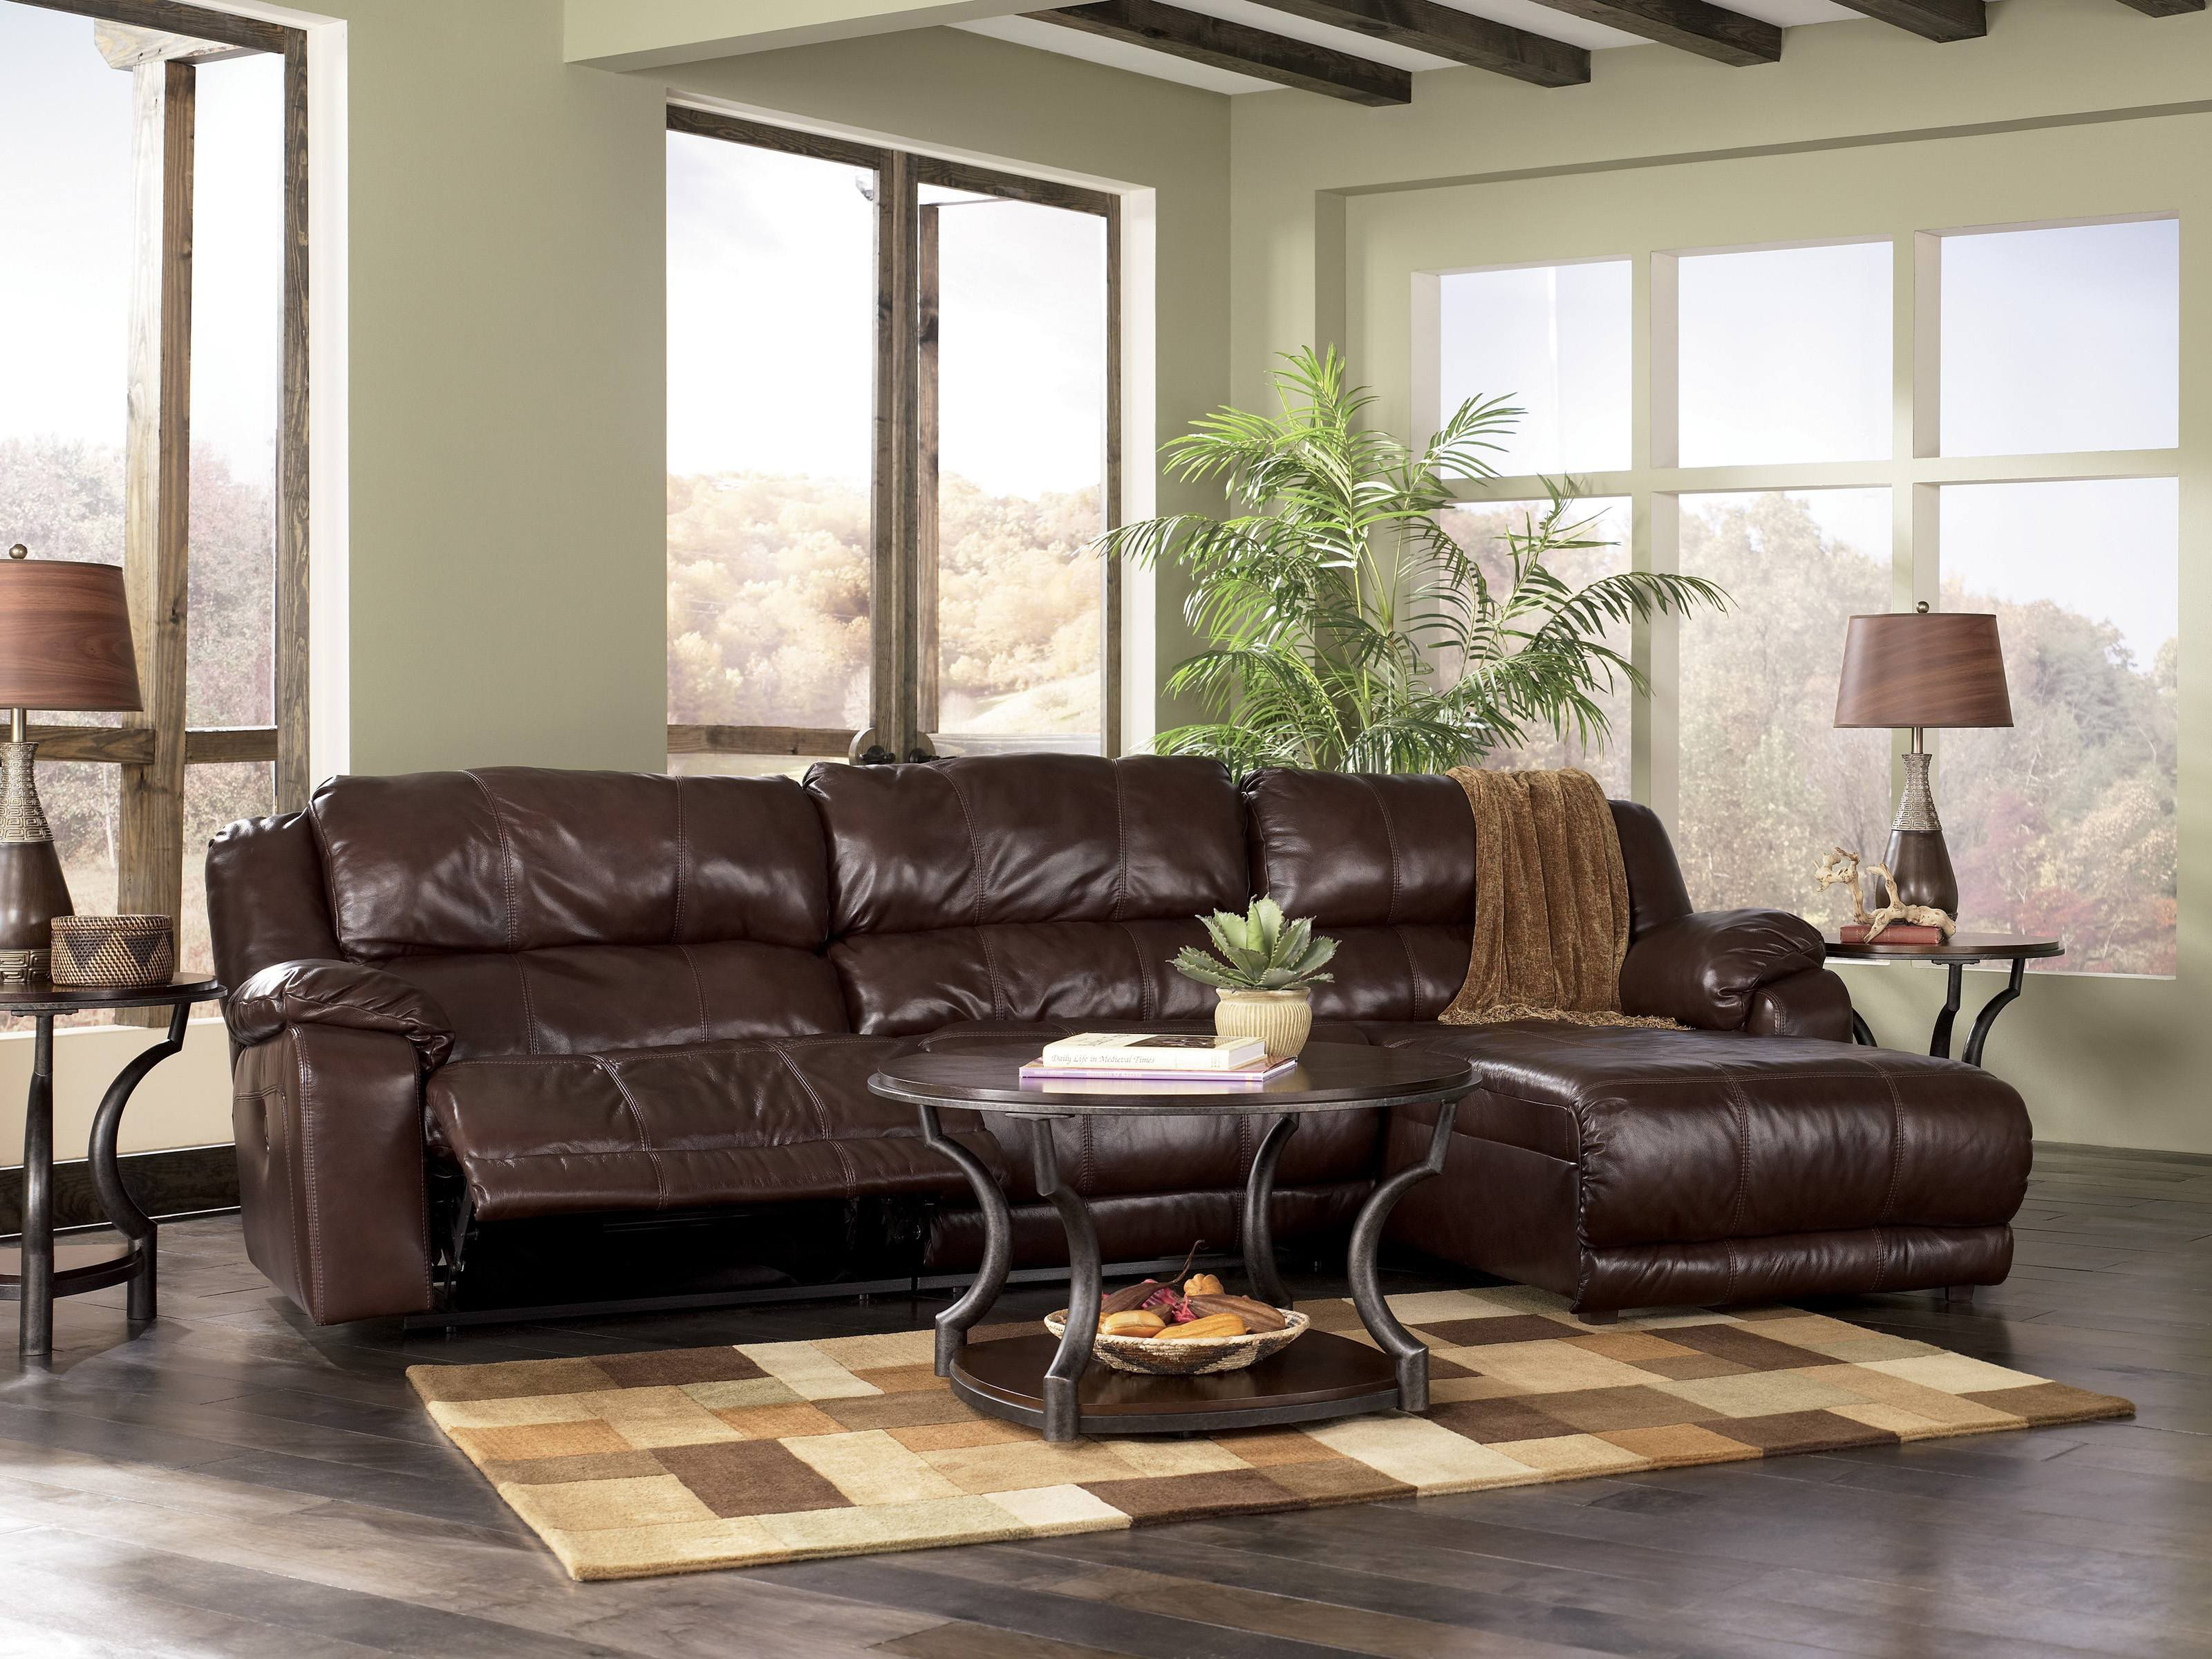 572 reclining sectional sofa with chaise by franklin pb comfort upholstered reviews sofas recliners johnson leather